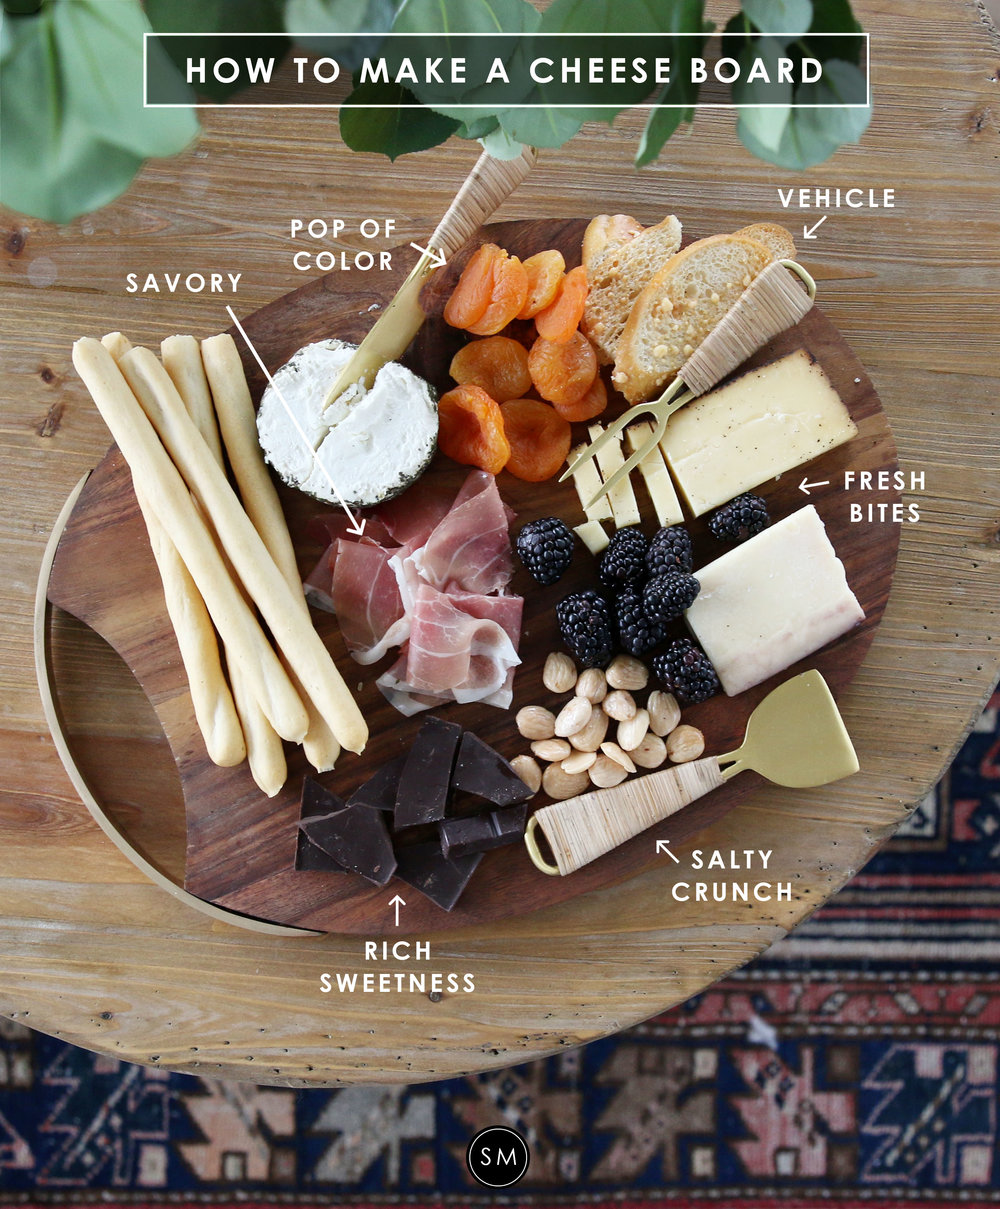 Cheeseboard Graphic2.jpg